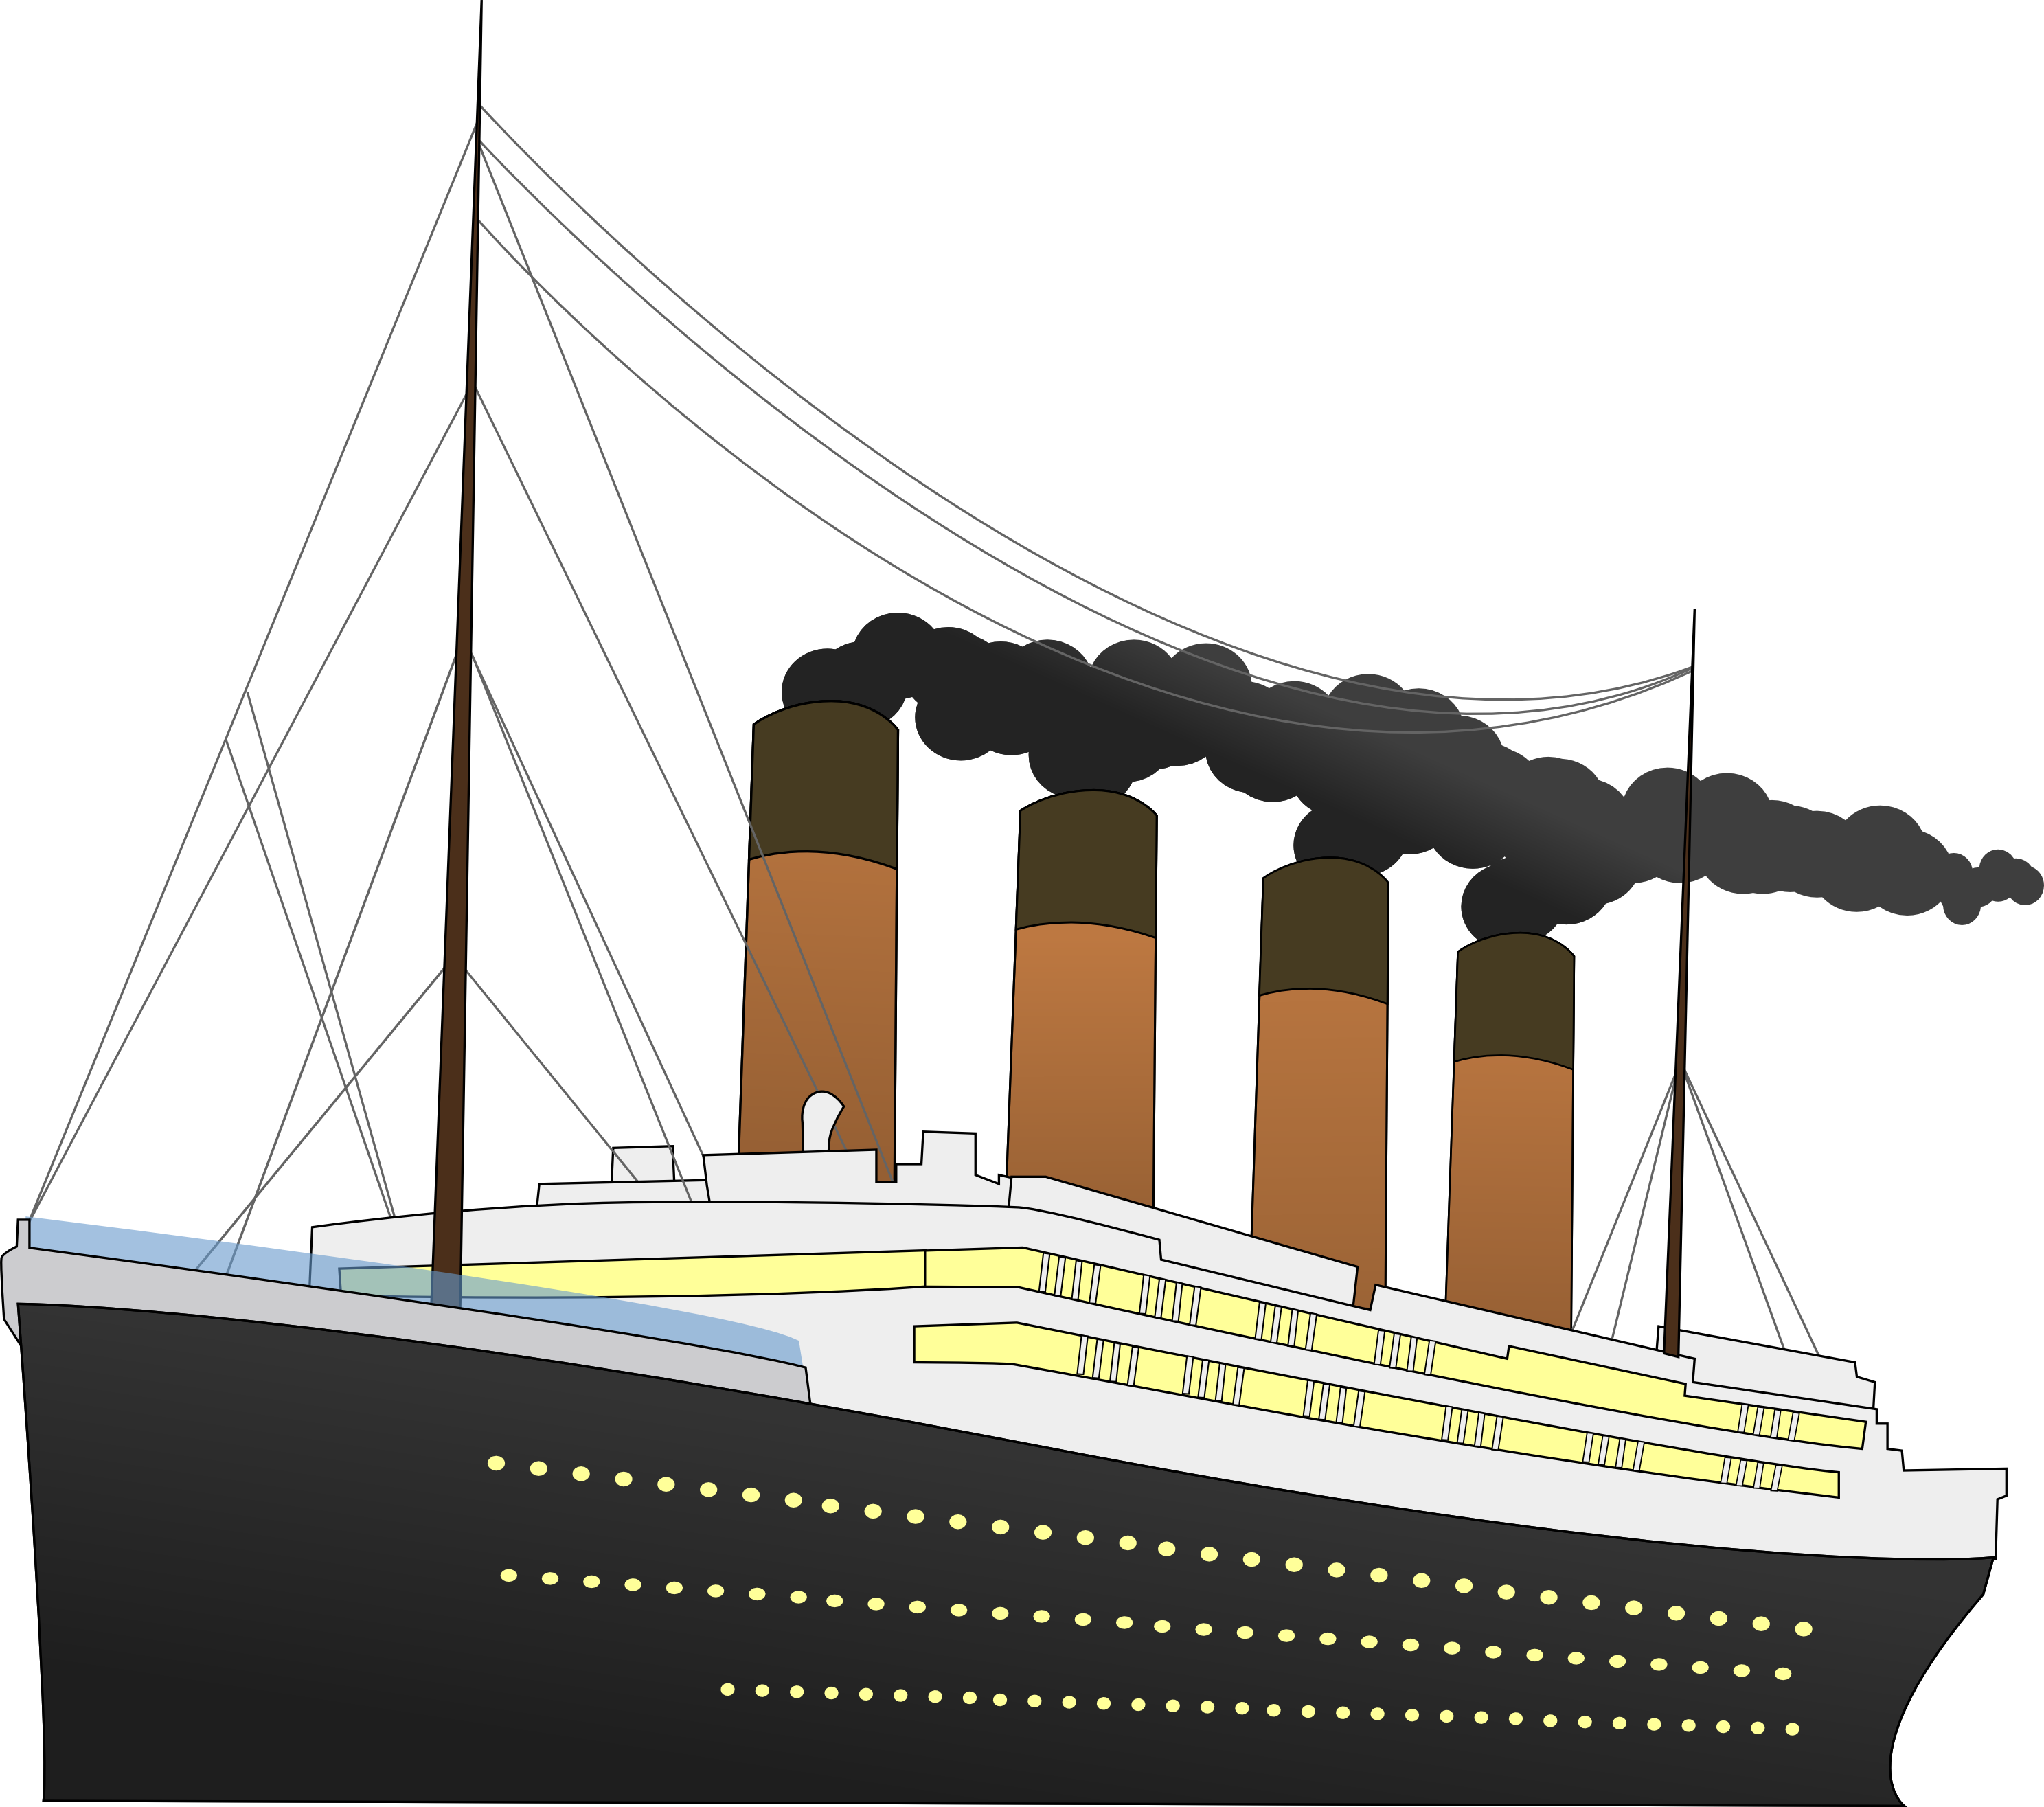 jpg royalty free download Titanic clipart. Boat